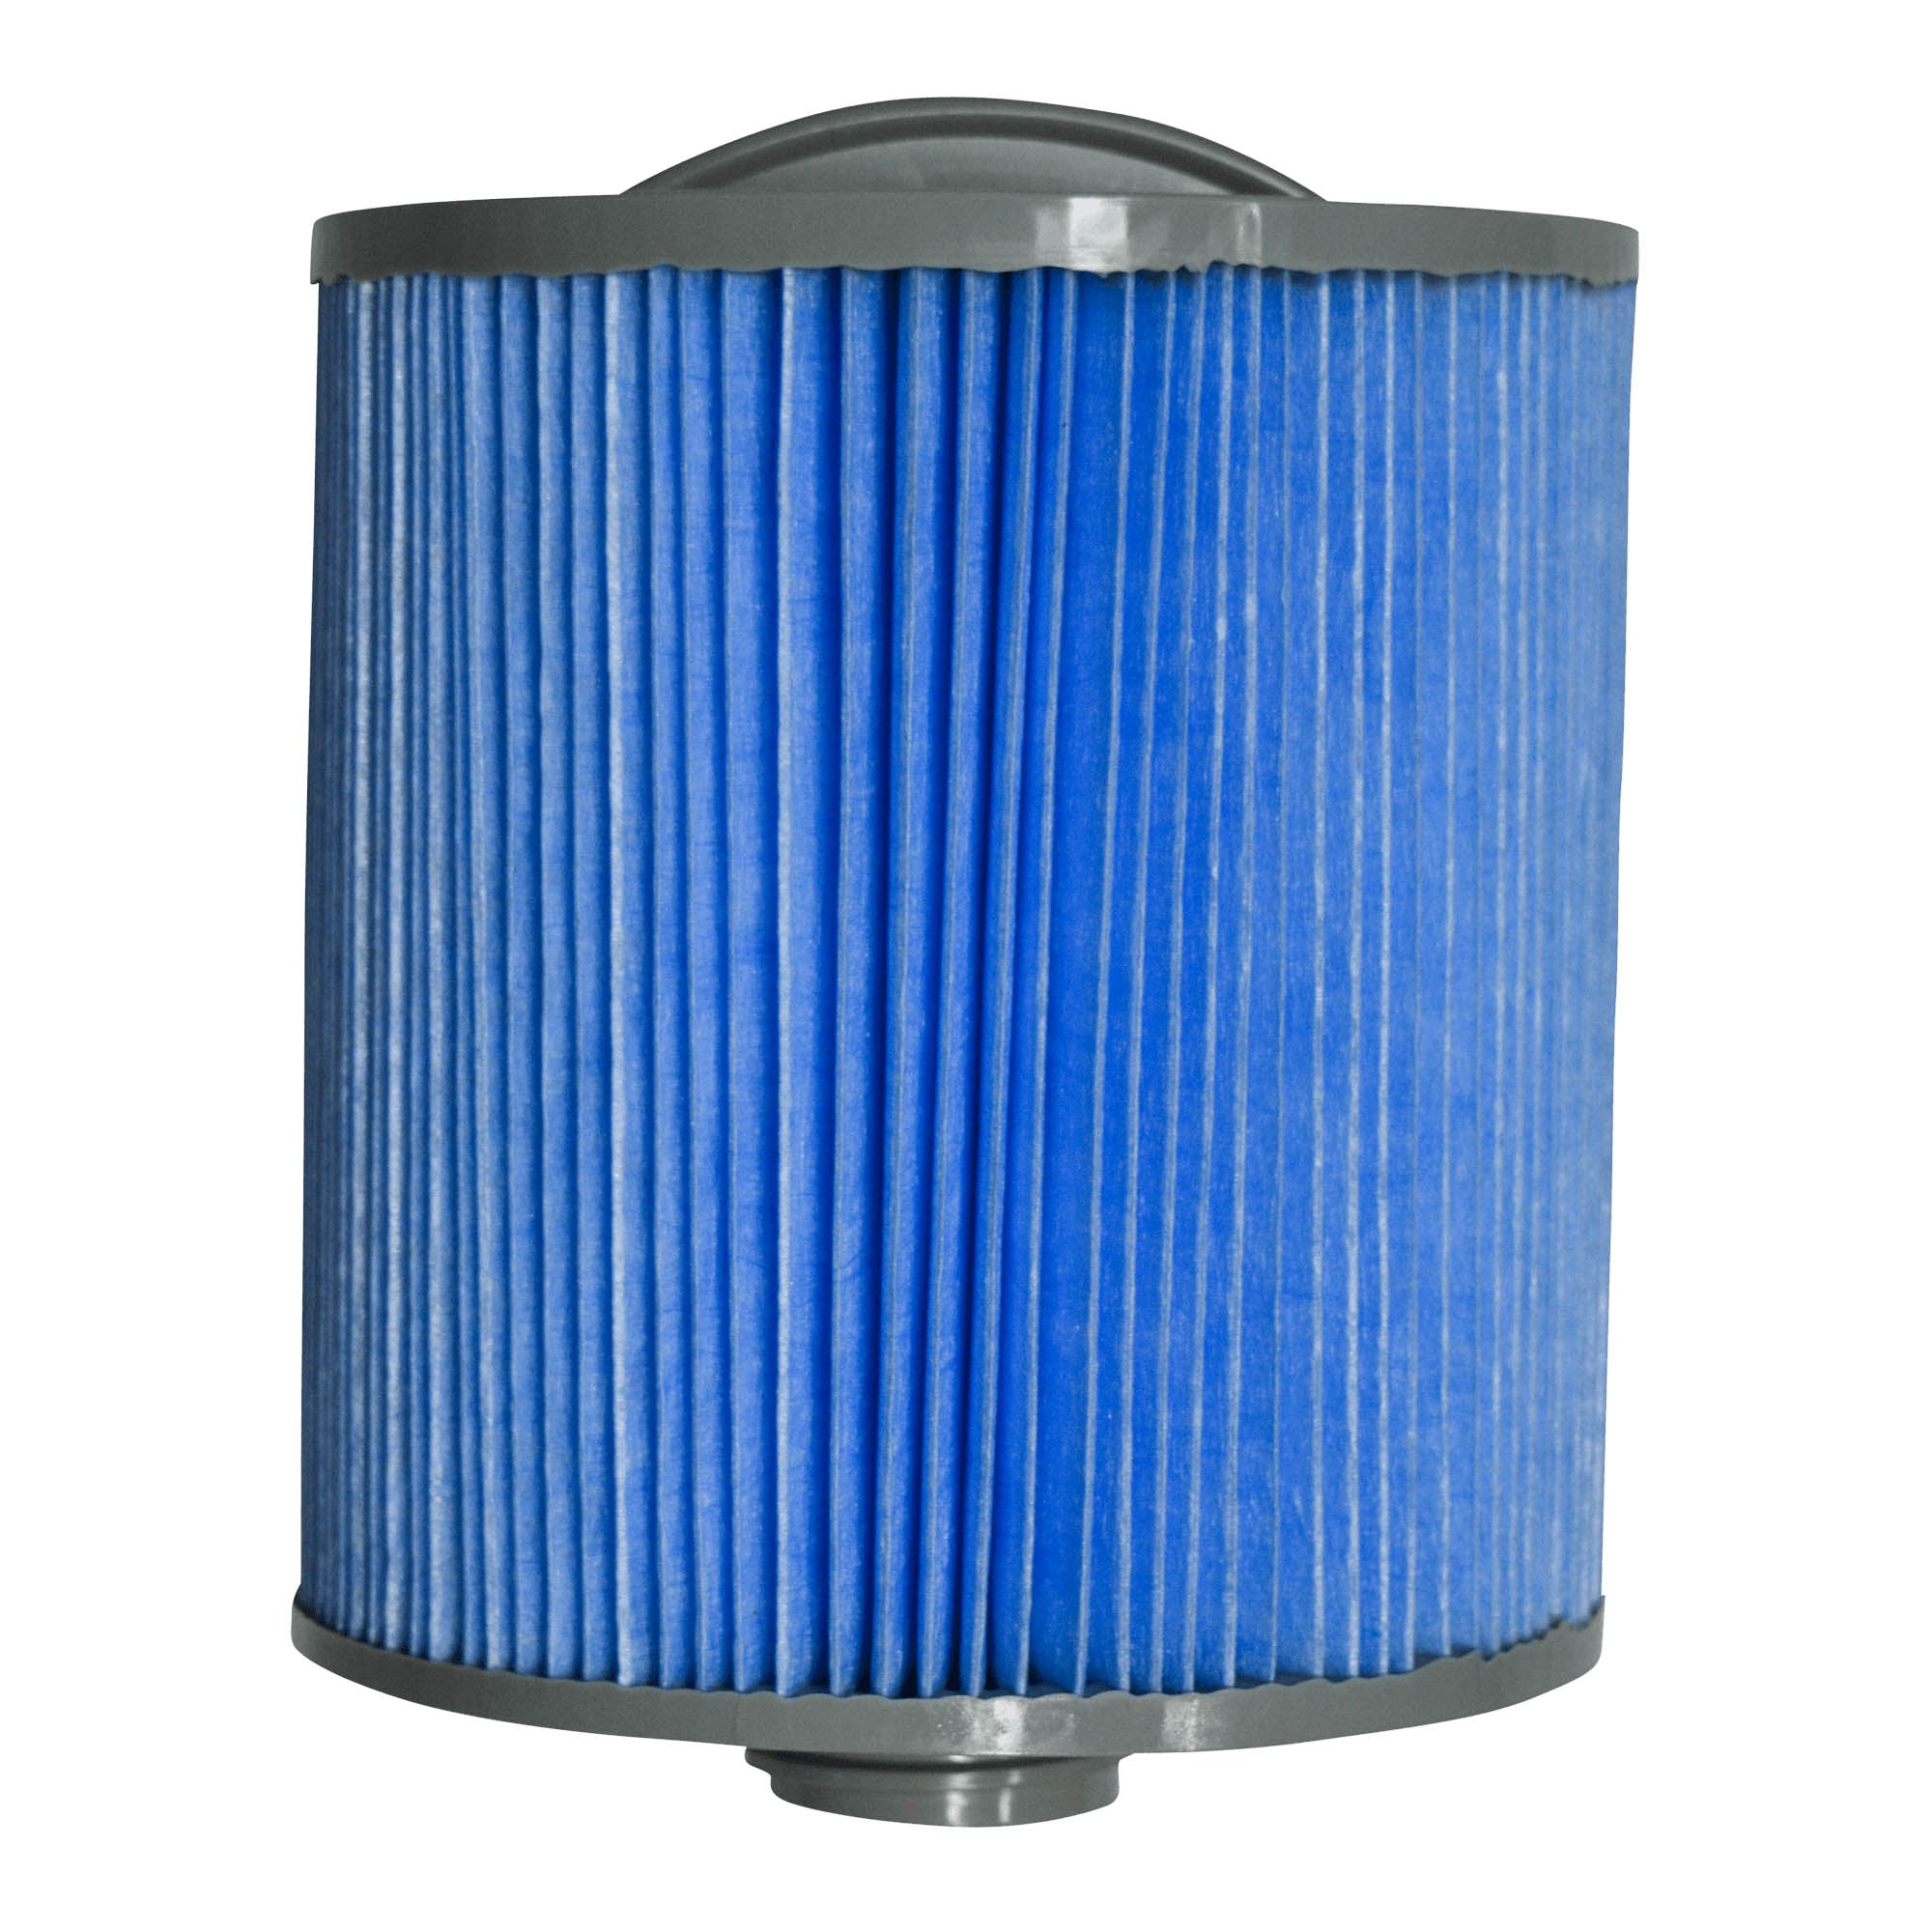 Microban® Silverstream Filter